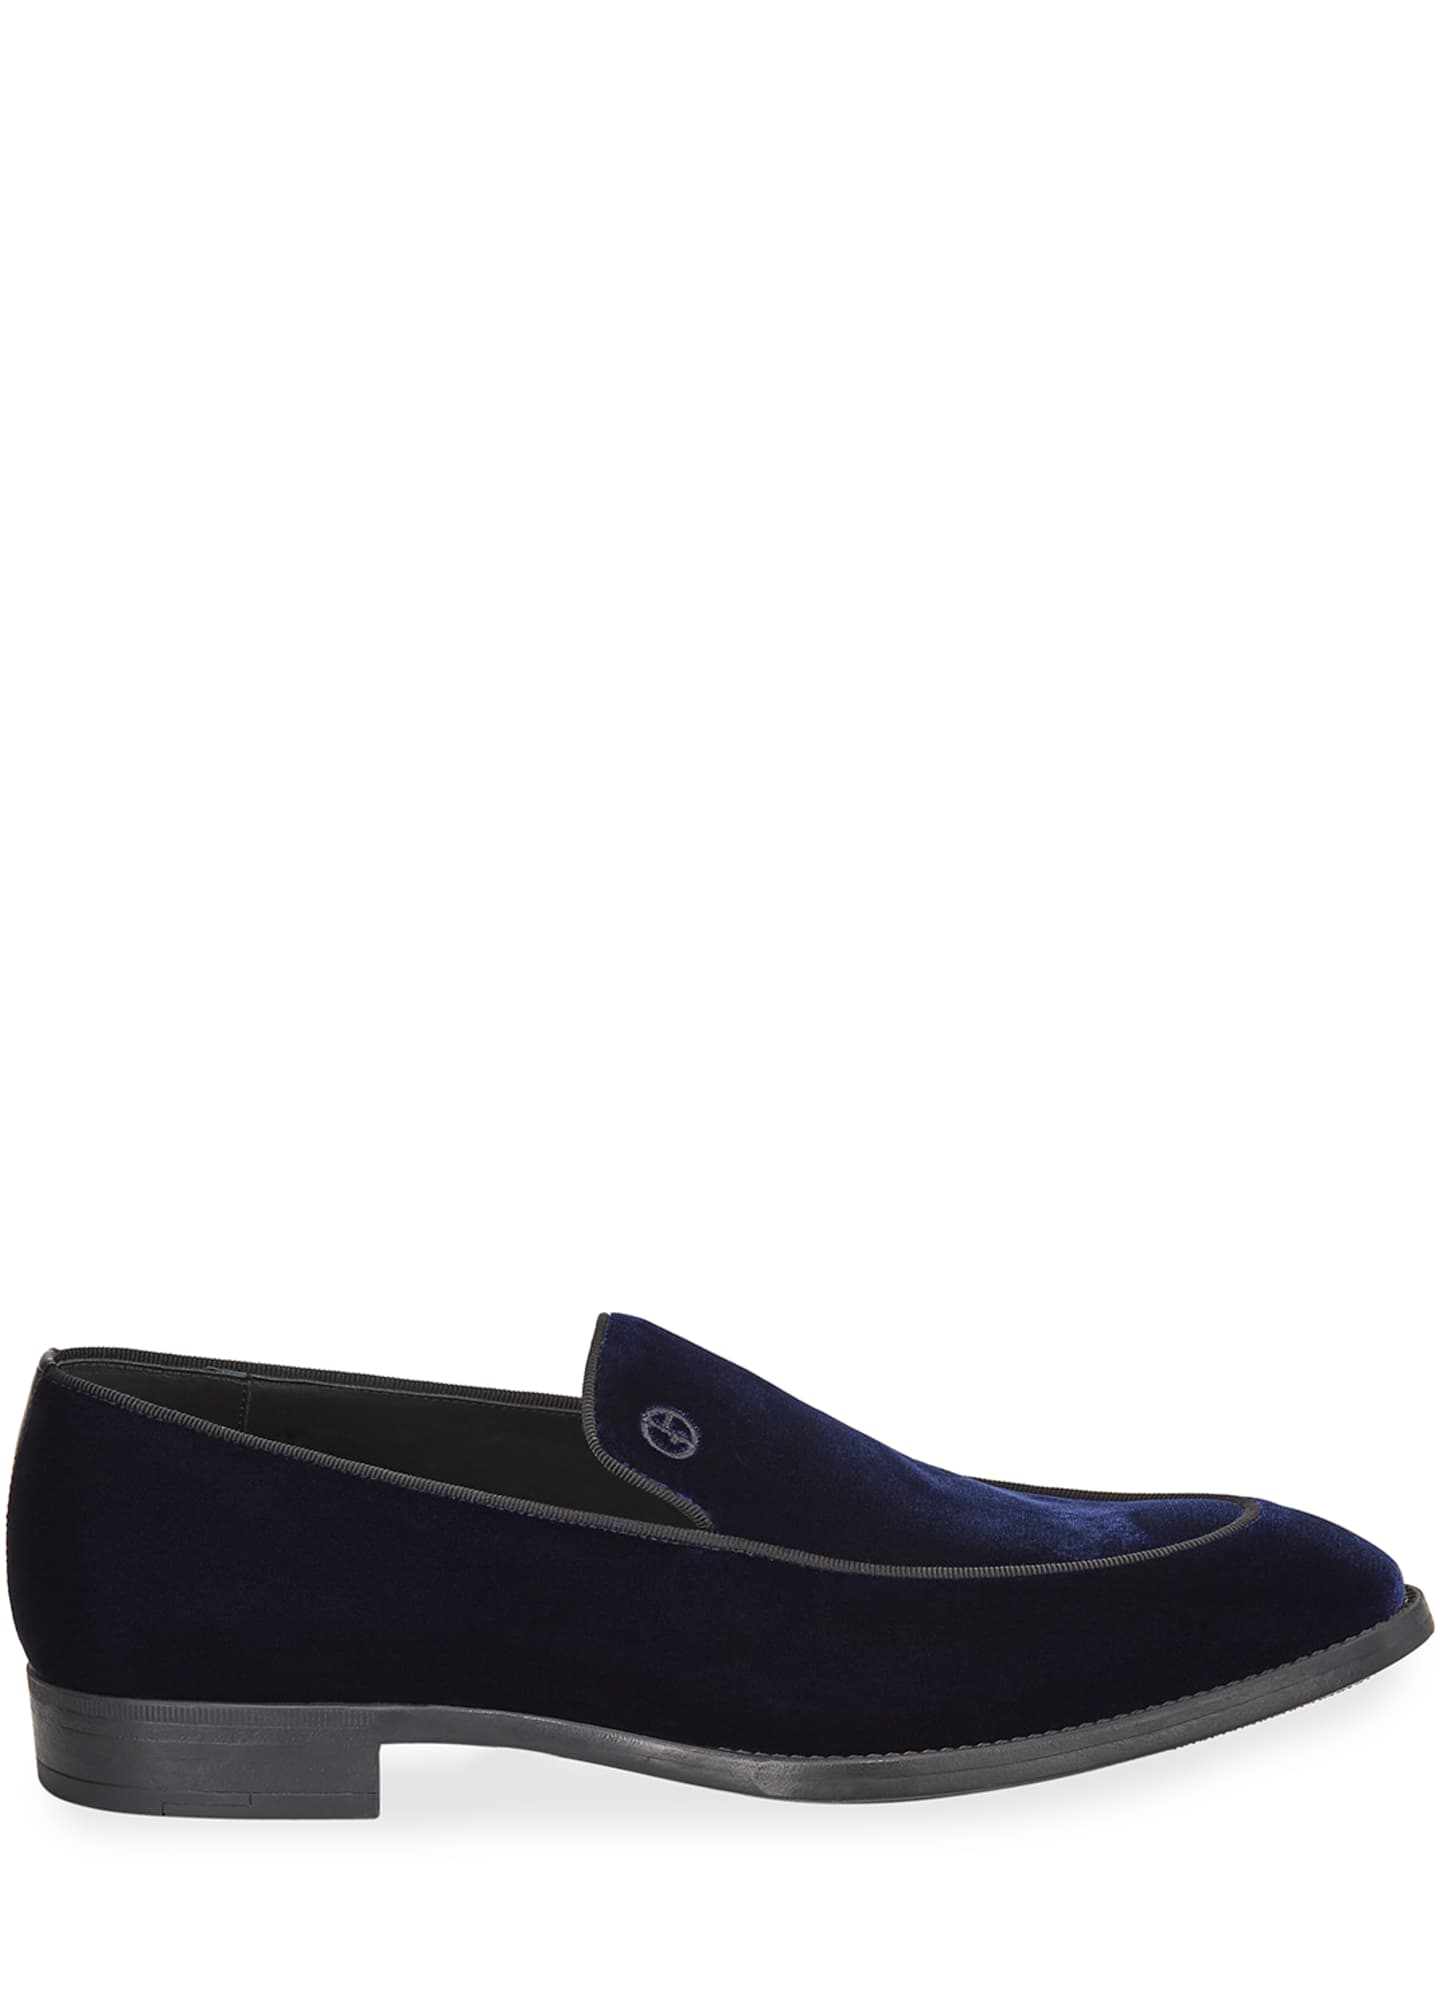 Image 3 of 3: Men's Velvet Formal Loafers, Navy